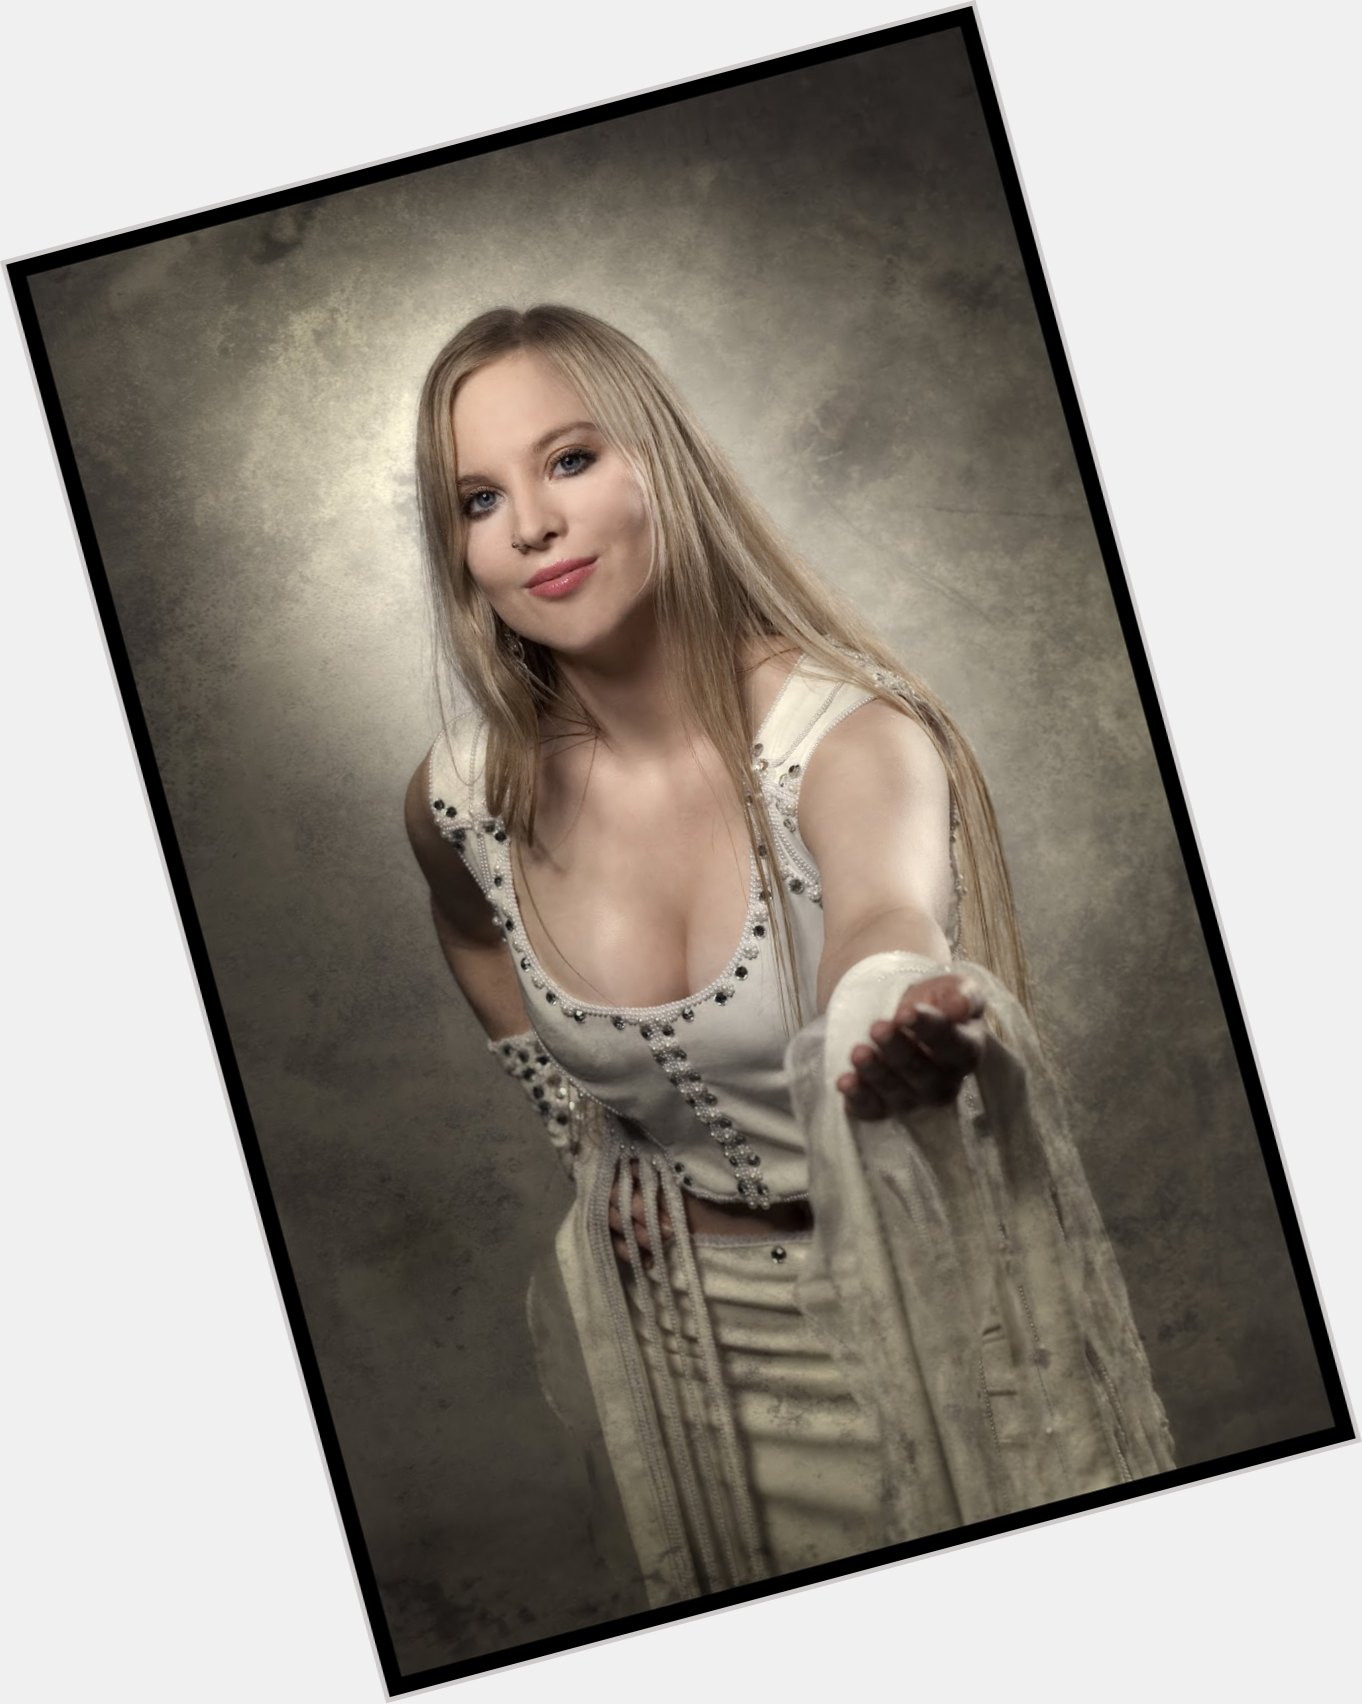 jewish singles in carman Carman's best 100% free jewish girls dating site meet thousands of single jewish women in carman with mingle2's free personal ads and chat rooms our network of jewish women in carman is.